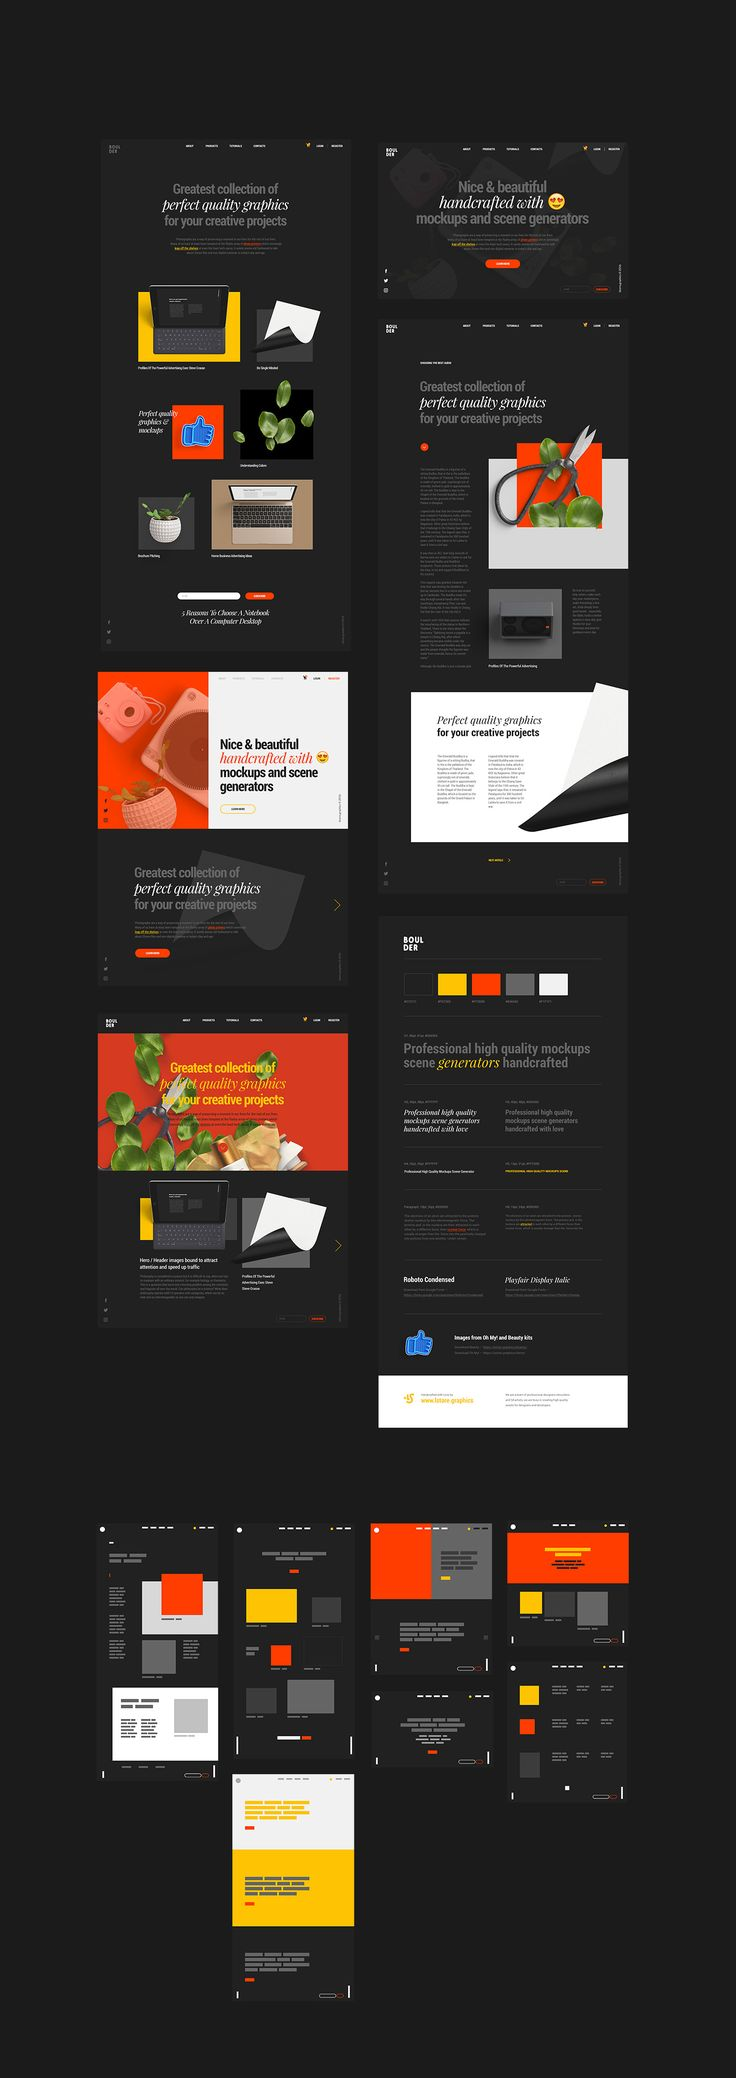 Concept Library for Sketch and Photoshop on Behance